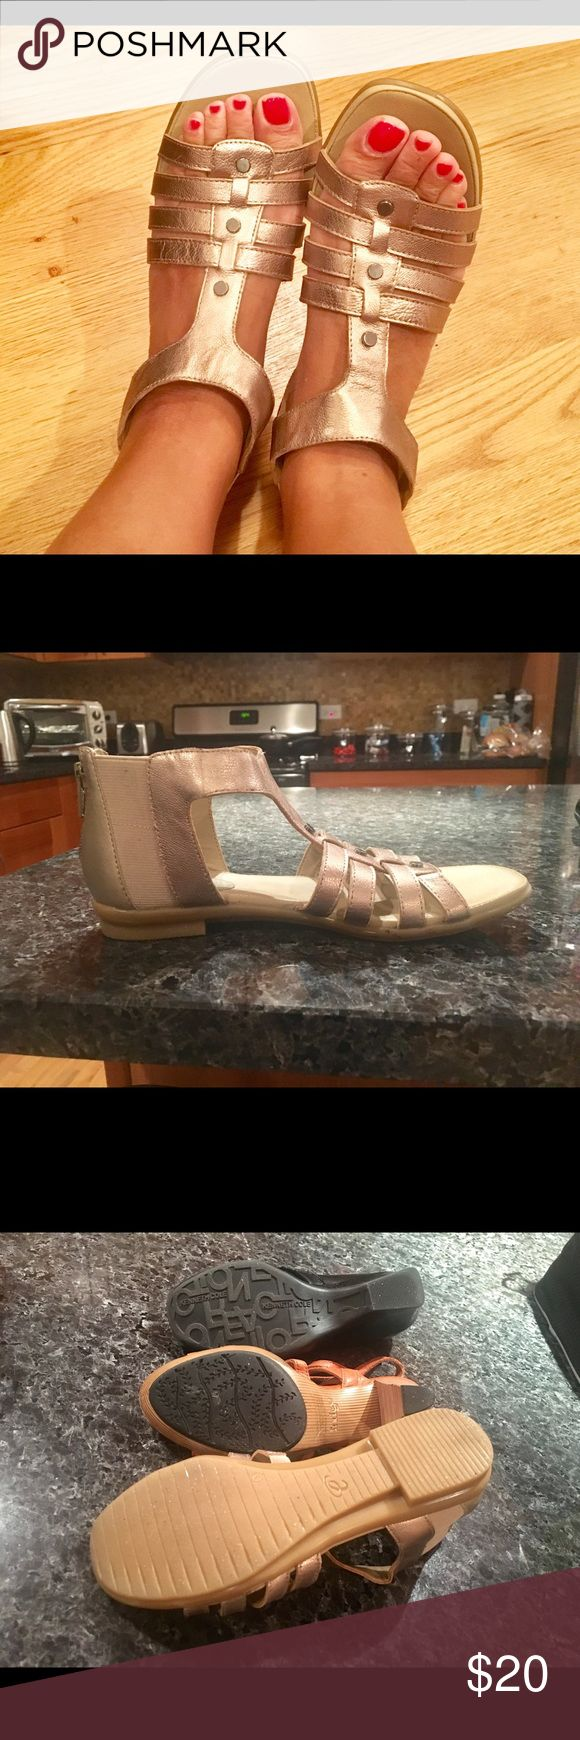 Gold Easy Spirit sandals. Worn once. Gold Easy Spirit sandals. Comfortable and durable. Make a statement with these beauties! Great with shorts, skirts, or capris. Great for walking. Worn only once. Easy Spirit Shoes Sandals